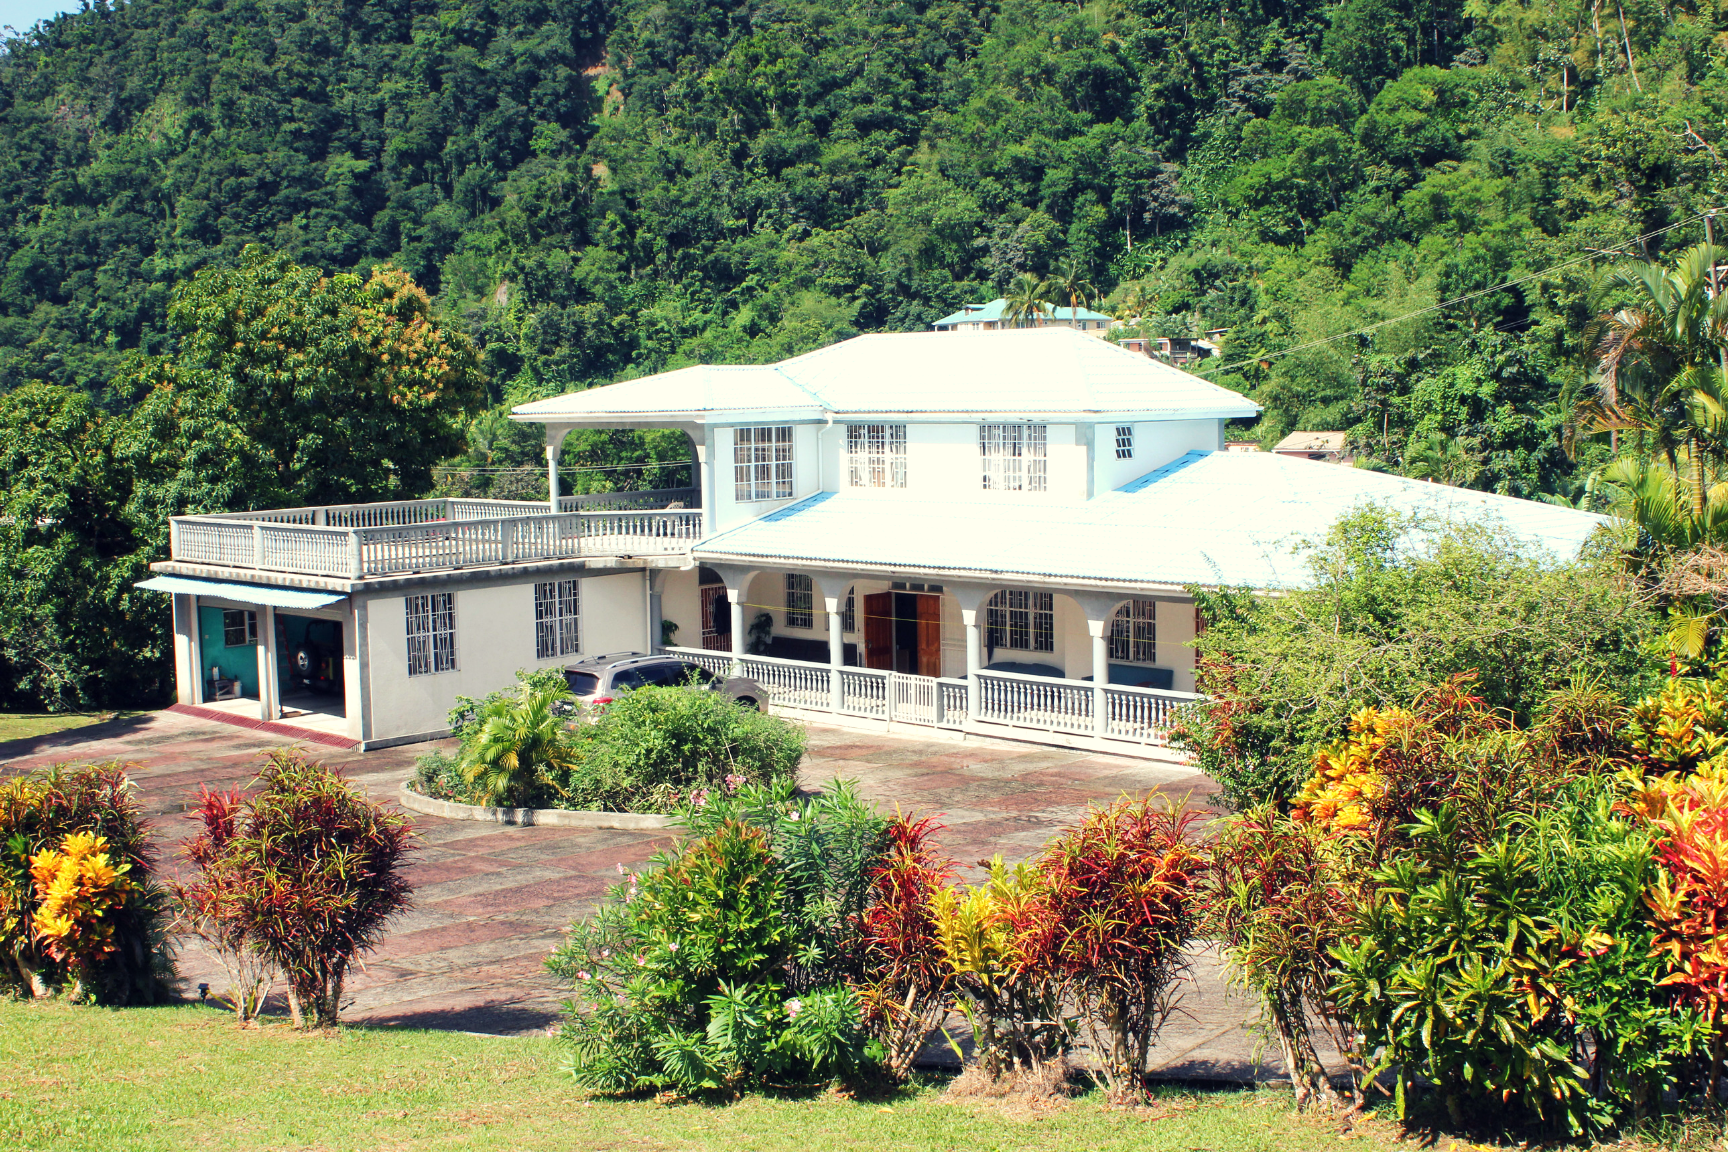 Dominica Real Estate For Sale In Shawford, Dominica